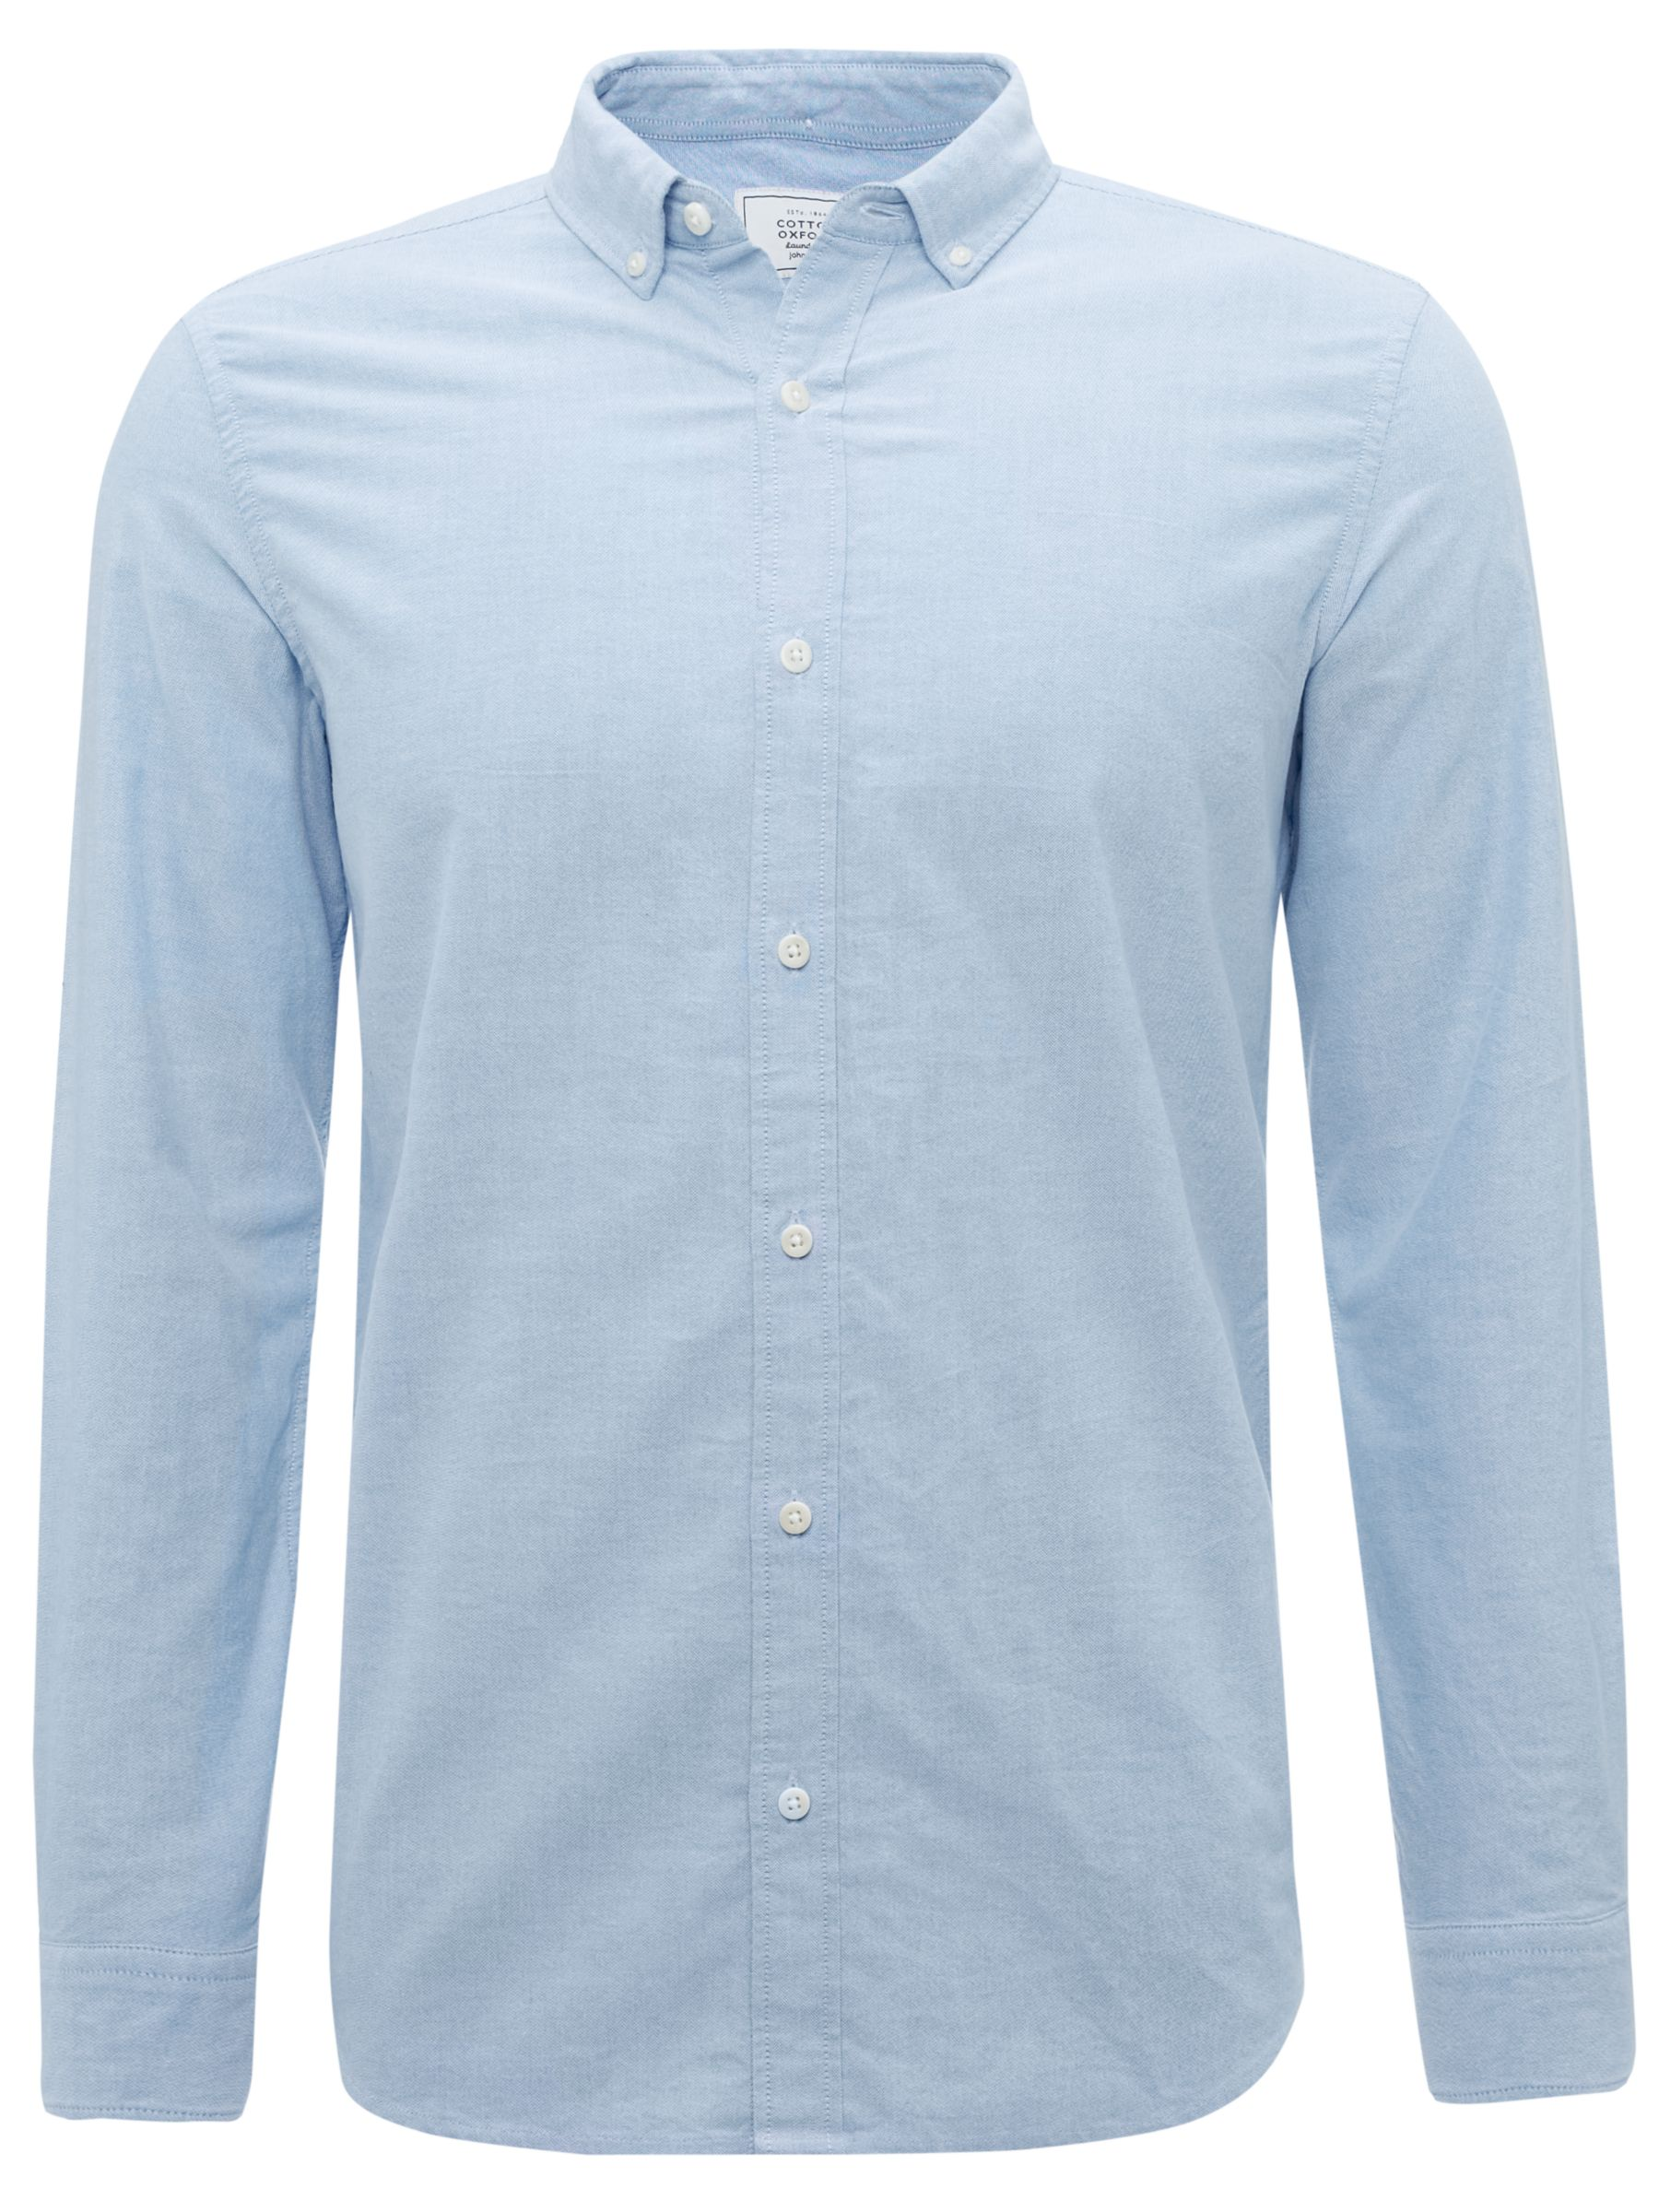 John Lewis Newtown Organic Oxford Shirt